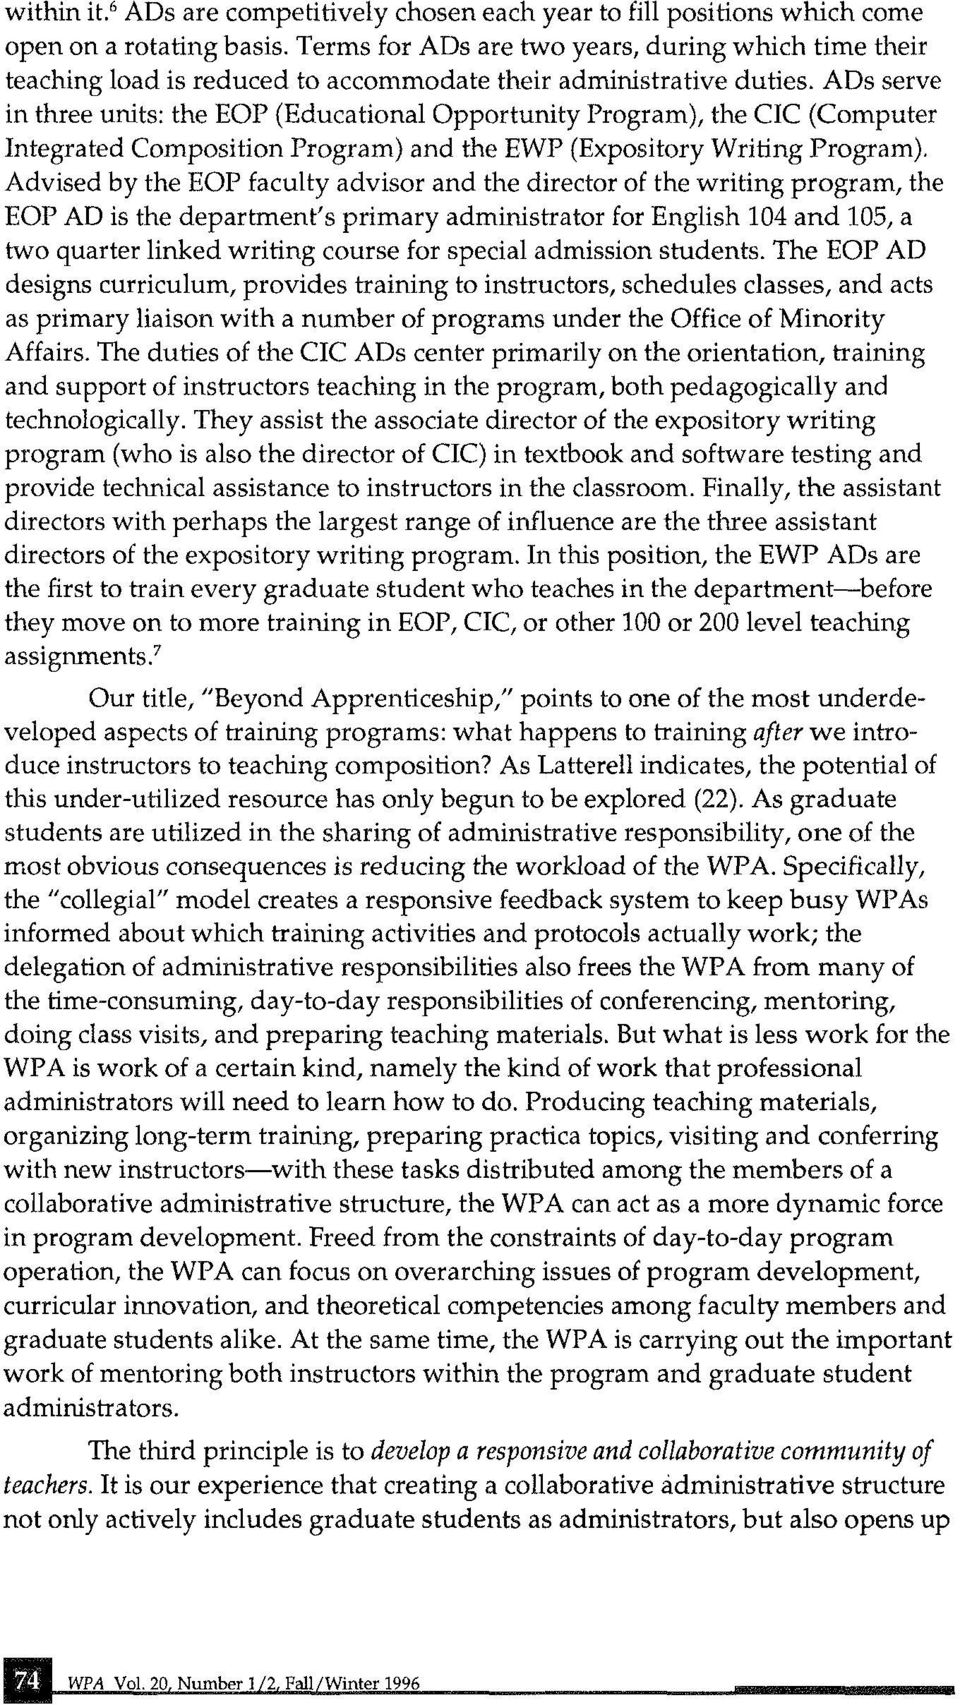 ADs serve in three units: the EOP (Educational Opportunity Program), the eie (Computer Integrated Composition Program) and the EWP (Expository Writing Program).